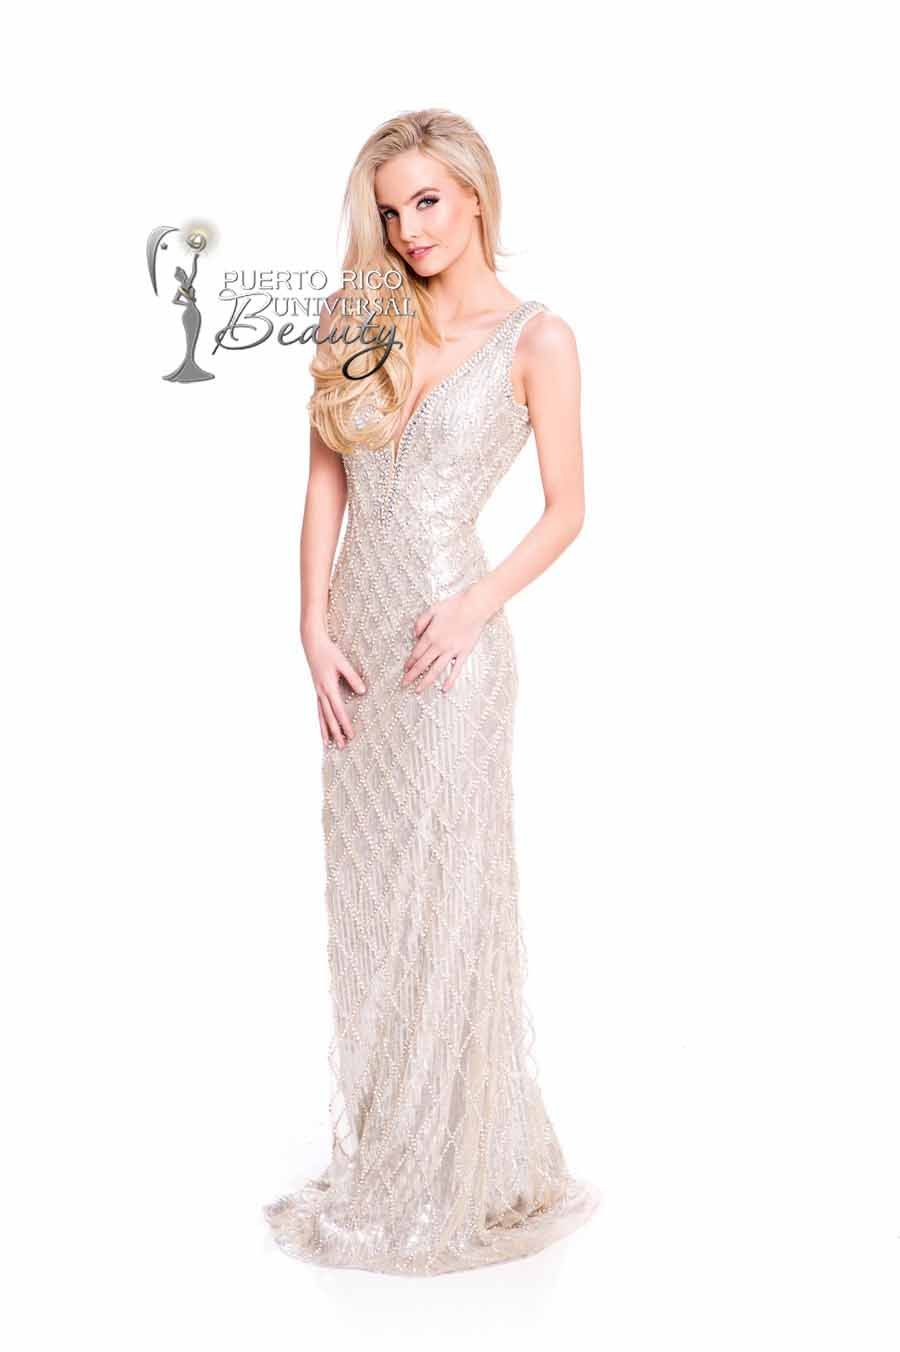 MISS UNIVERSE 2015 :: EVENING GOWN | Joanna Cooper, Miss Universe ...